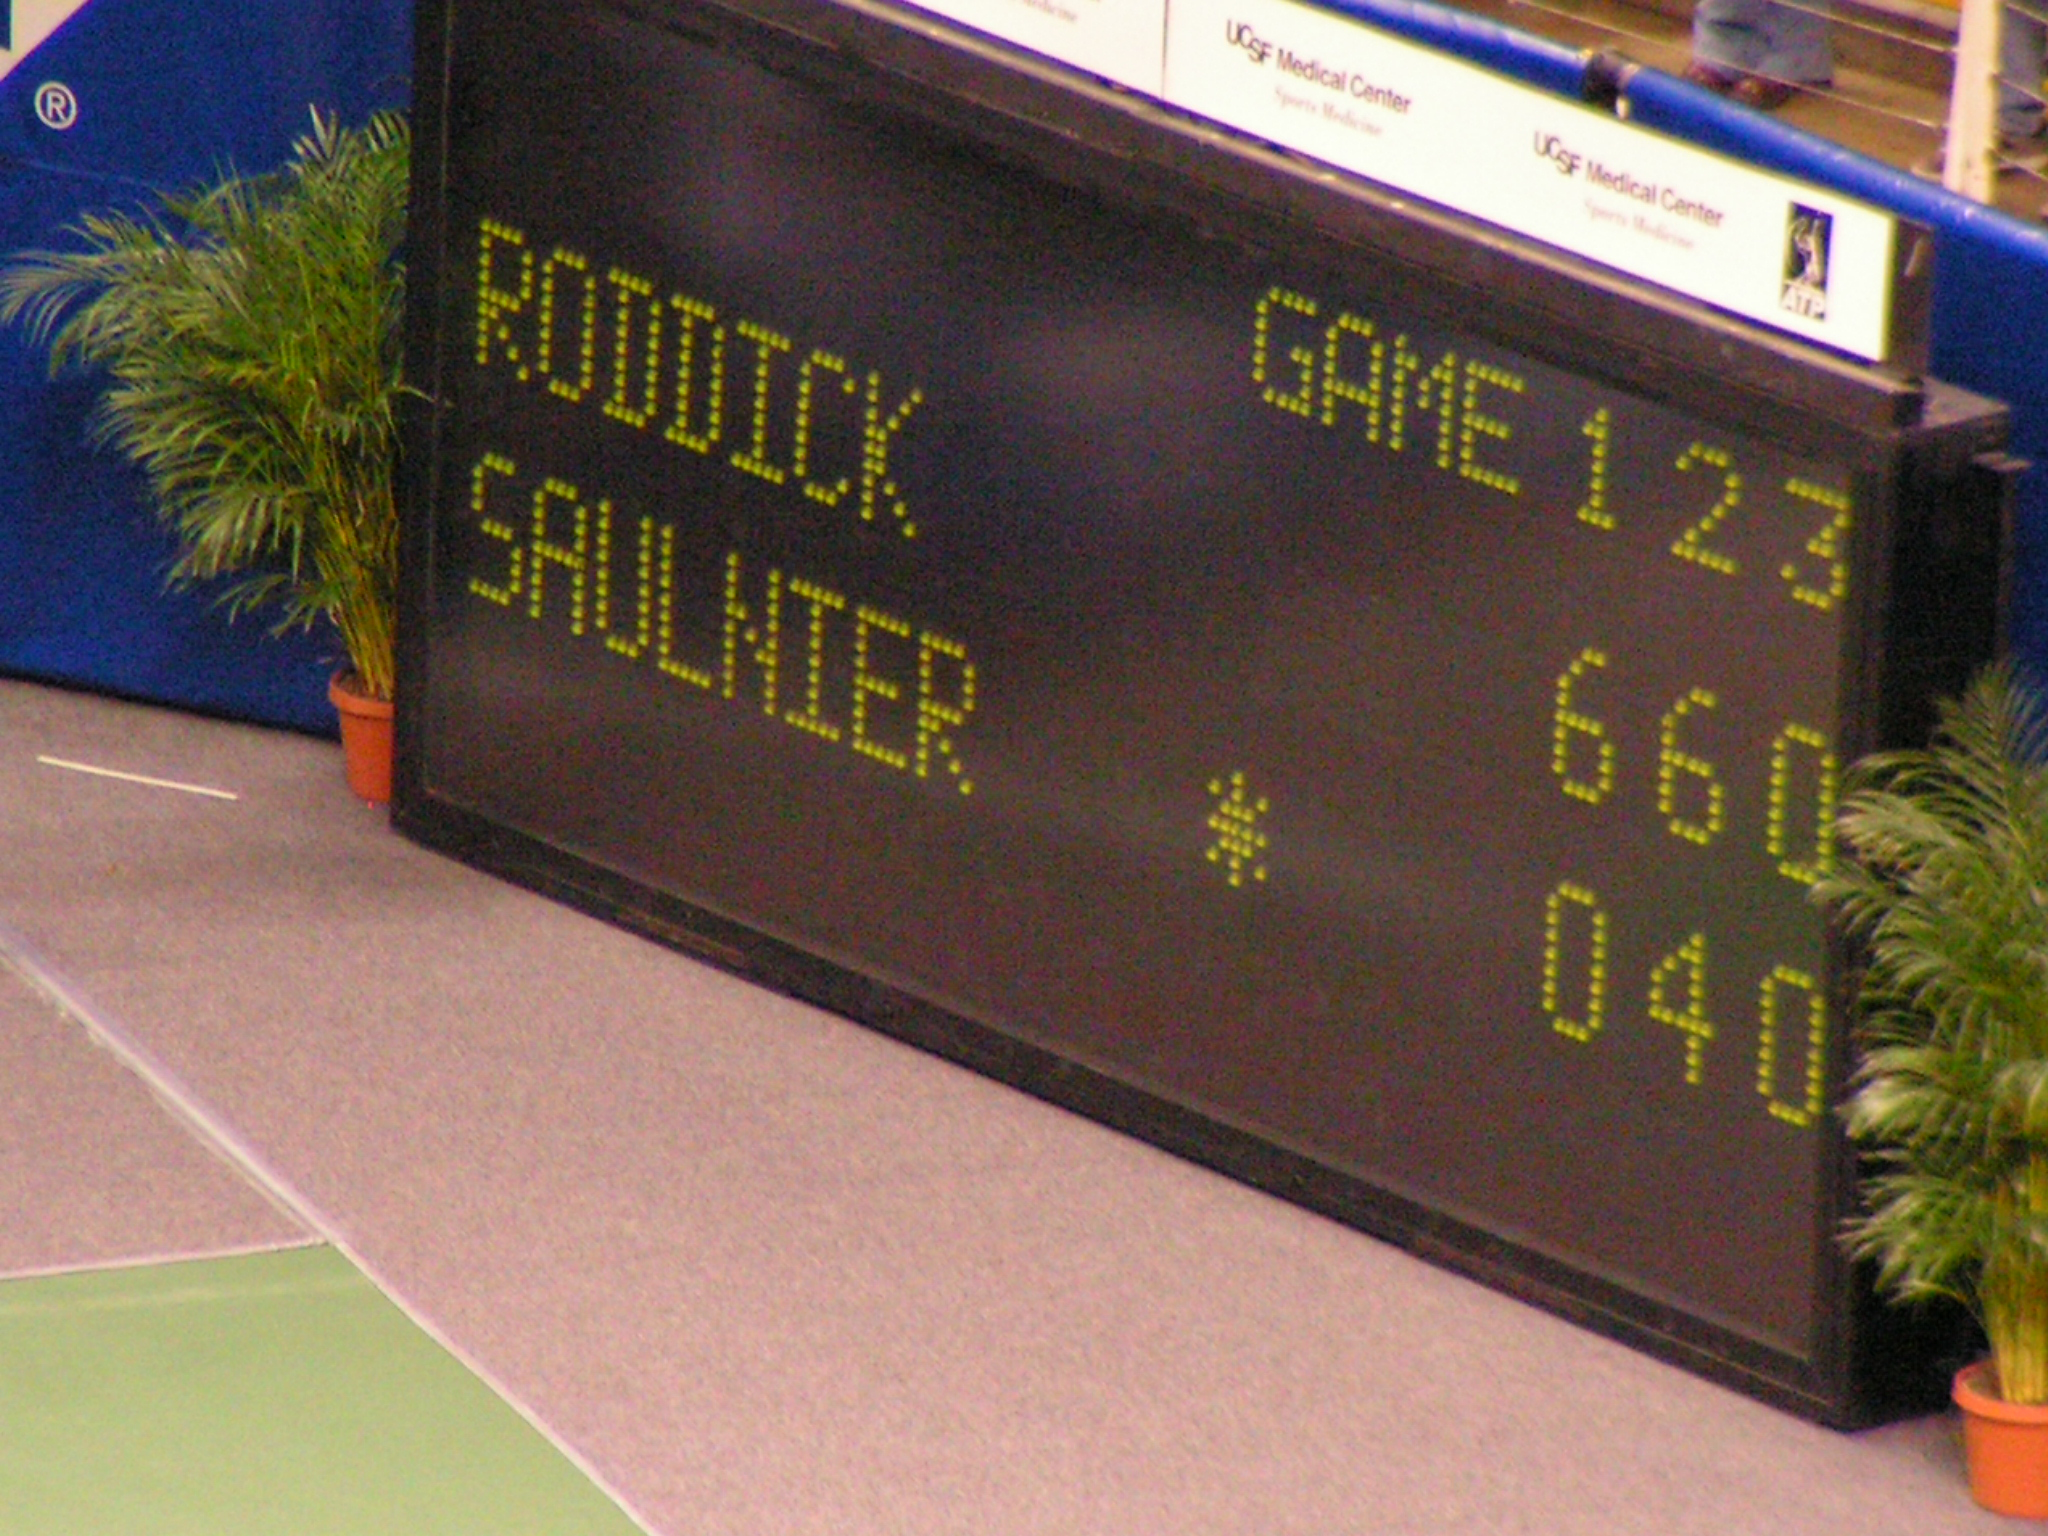 File:Final Score Andy Roddick vs Saulnier.jpg - Wikimedia Commons